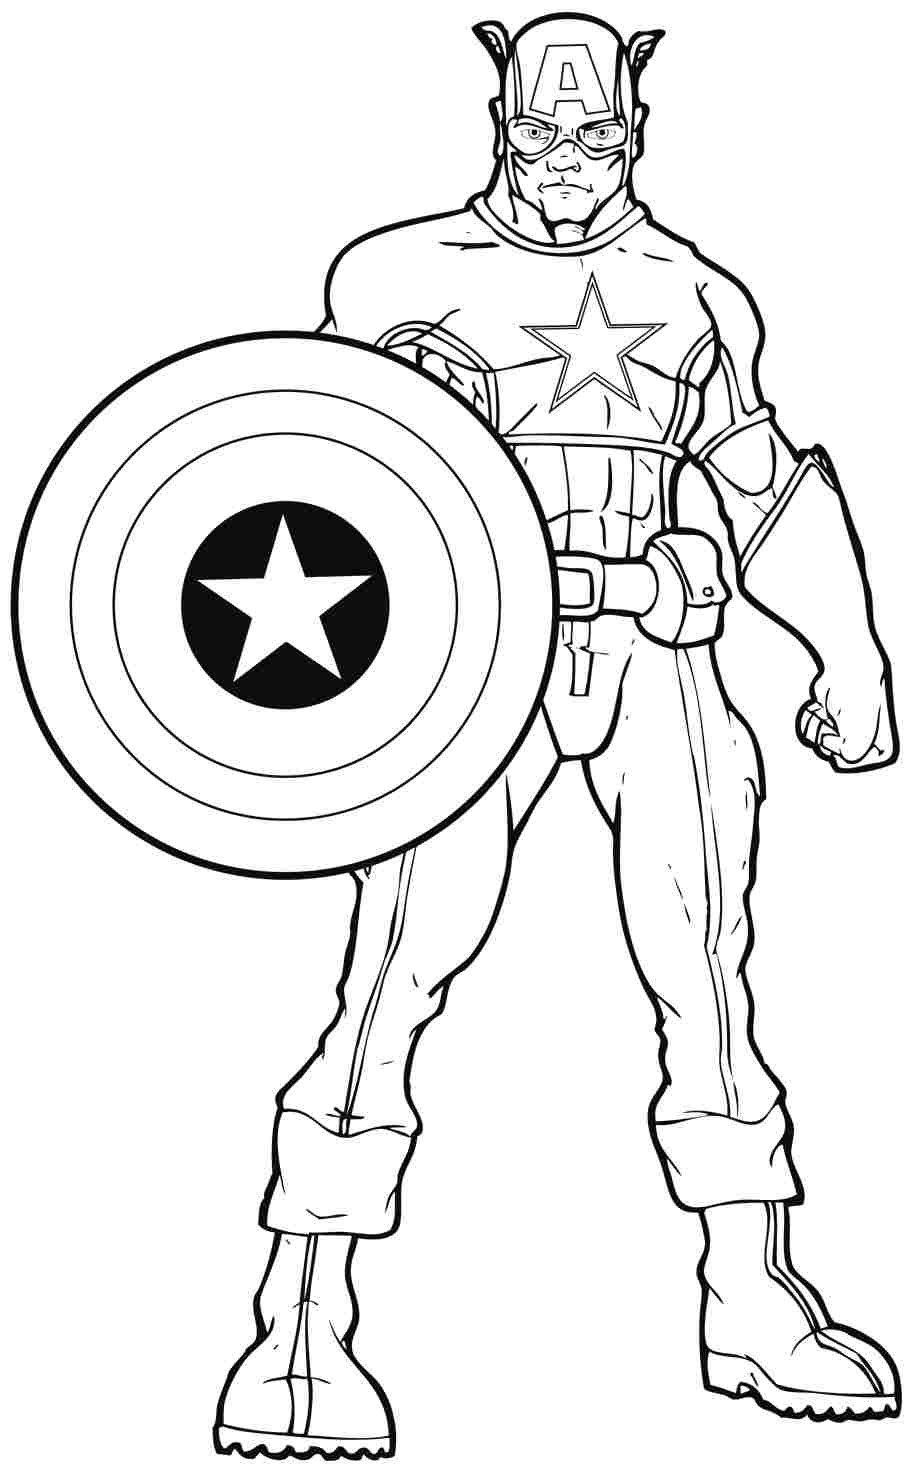 Super Hero Coloring Pages Free Coloring Pages Superheroes Printables Download Free In 2020 Captain America Coloring Pages Superhero Coloring Pages Avengers Coloring